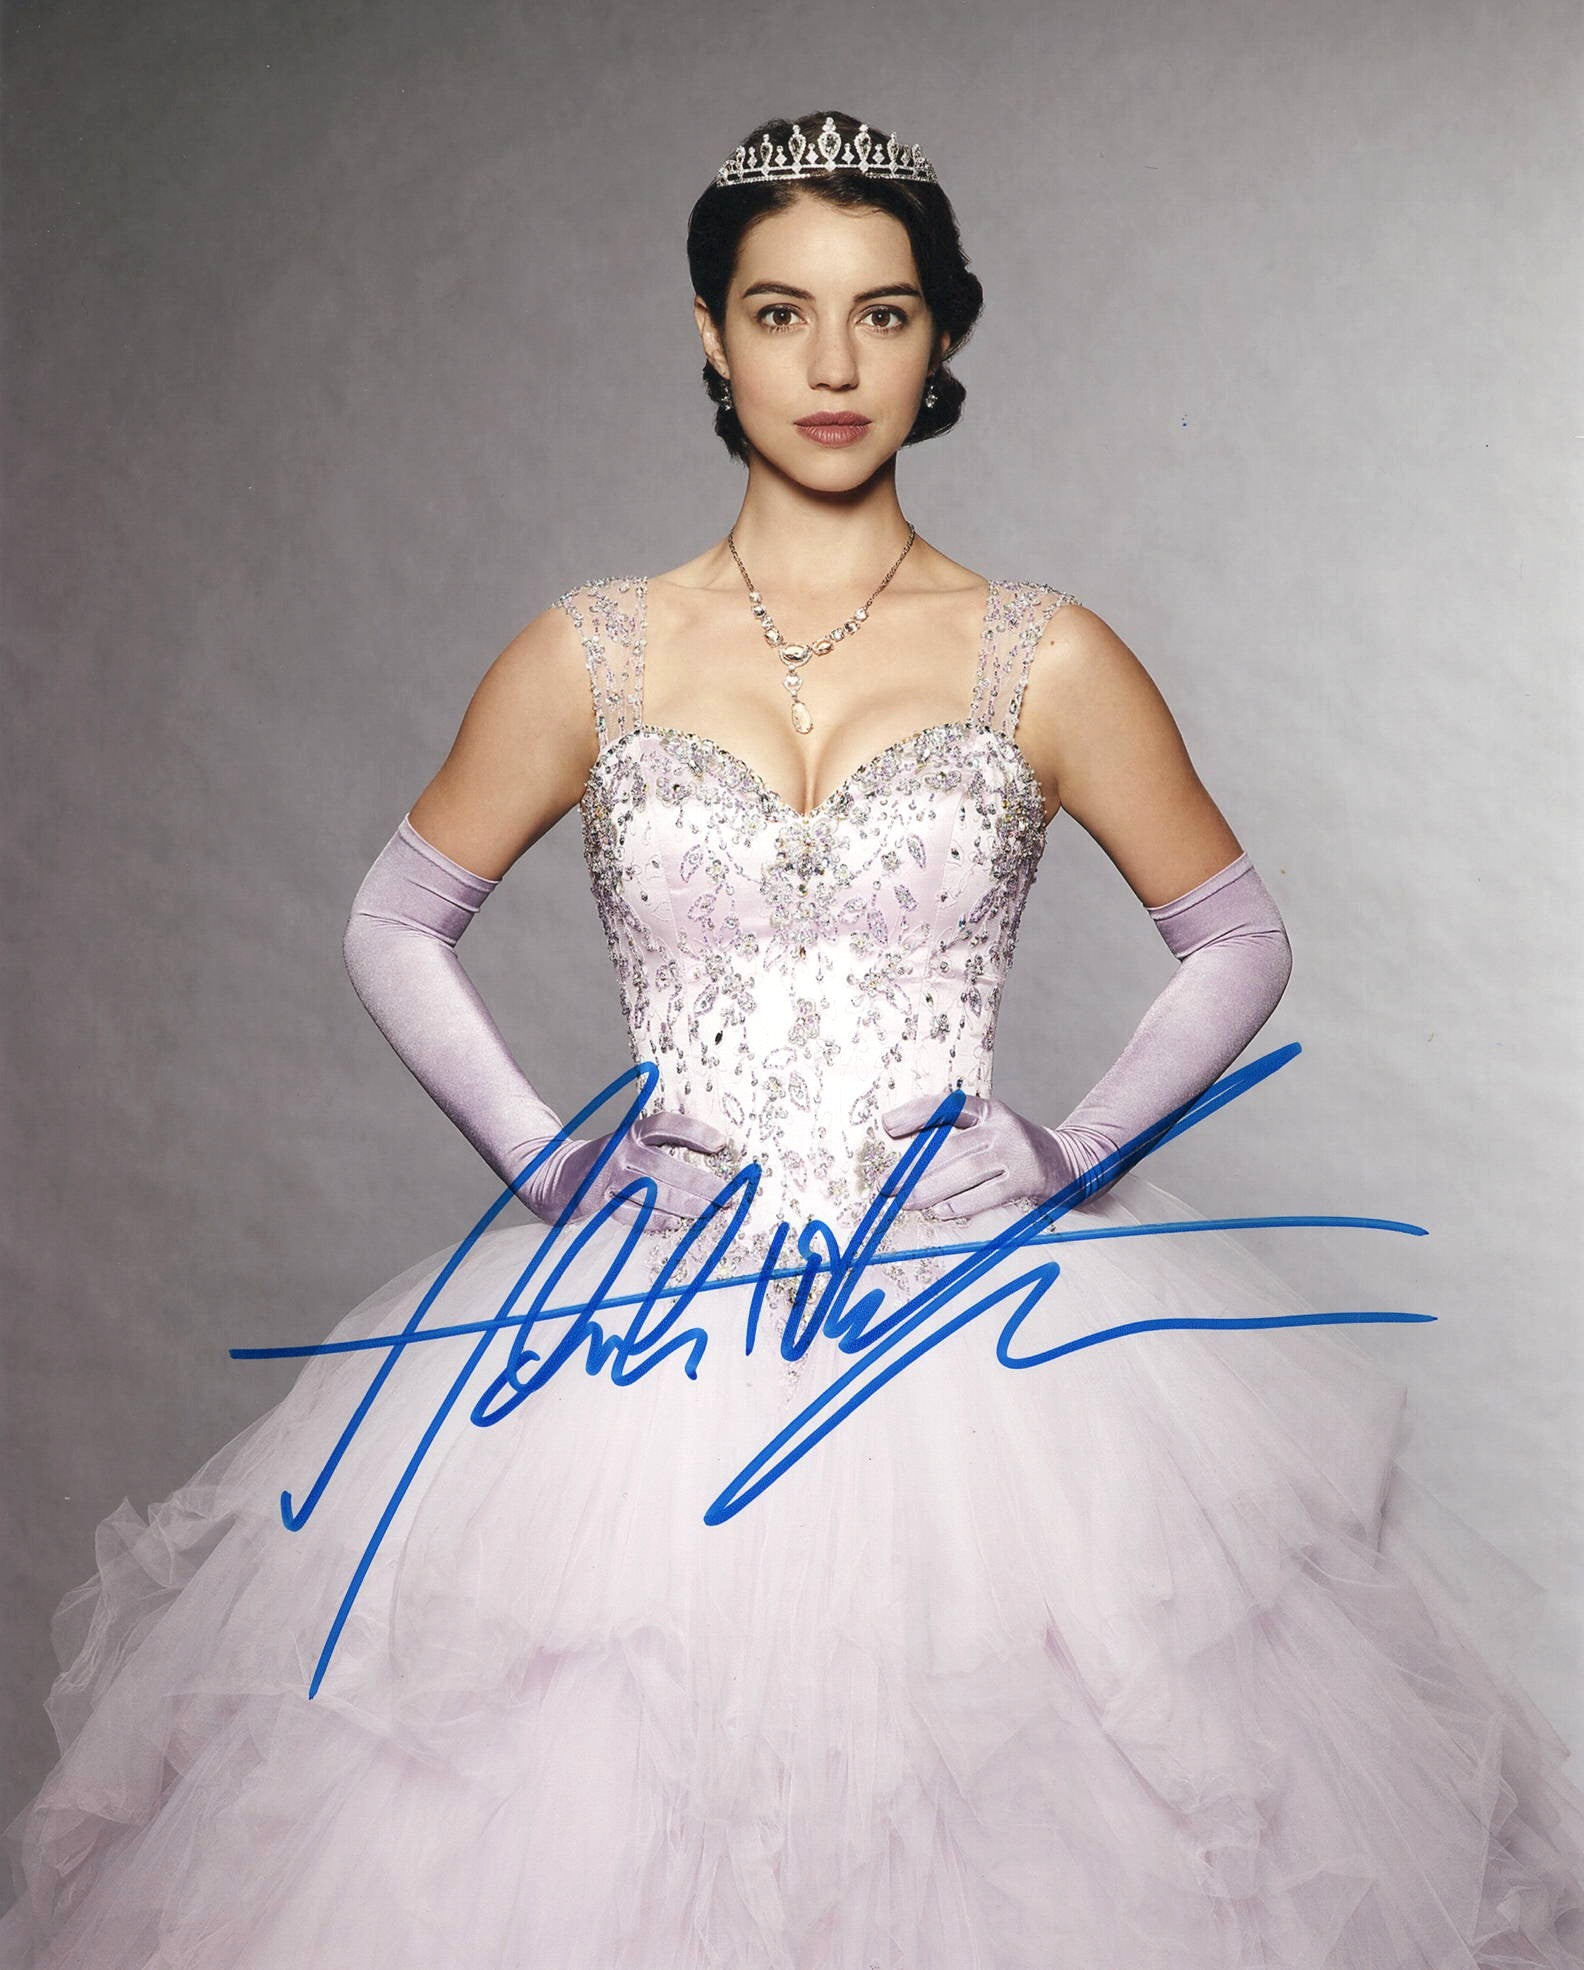 Adelaide Kane Once Upon A Time Signed Autograph 8x10 Photo #2 - Outlaw Hobbies Authentic Autographs